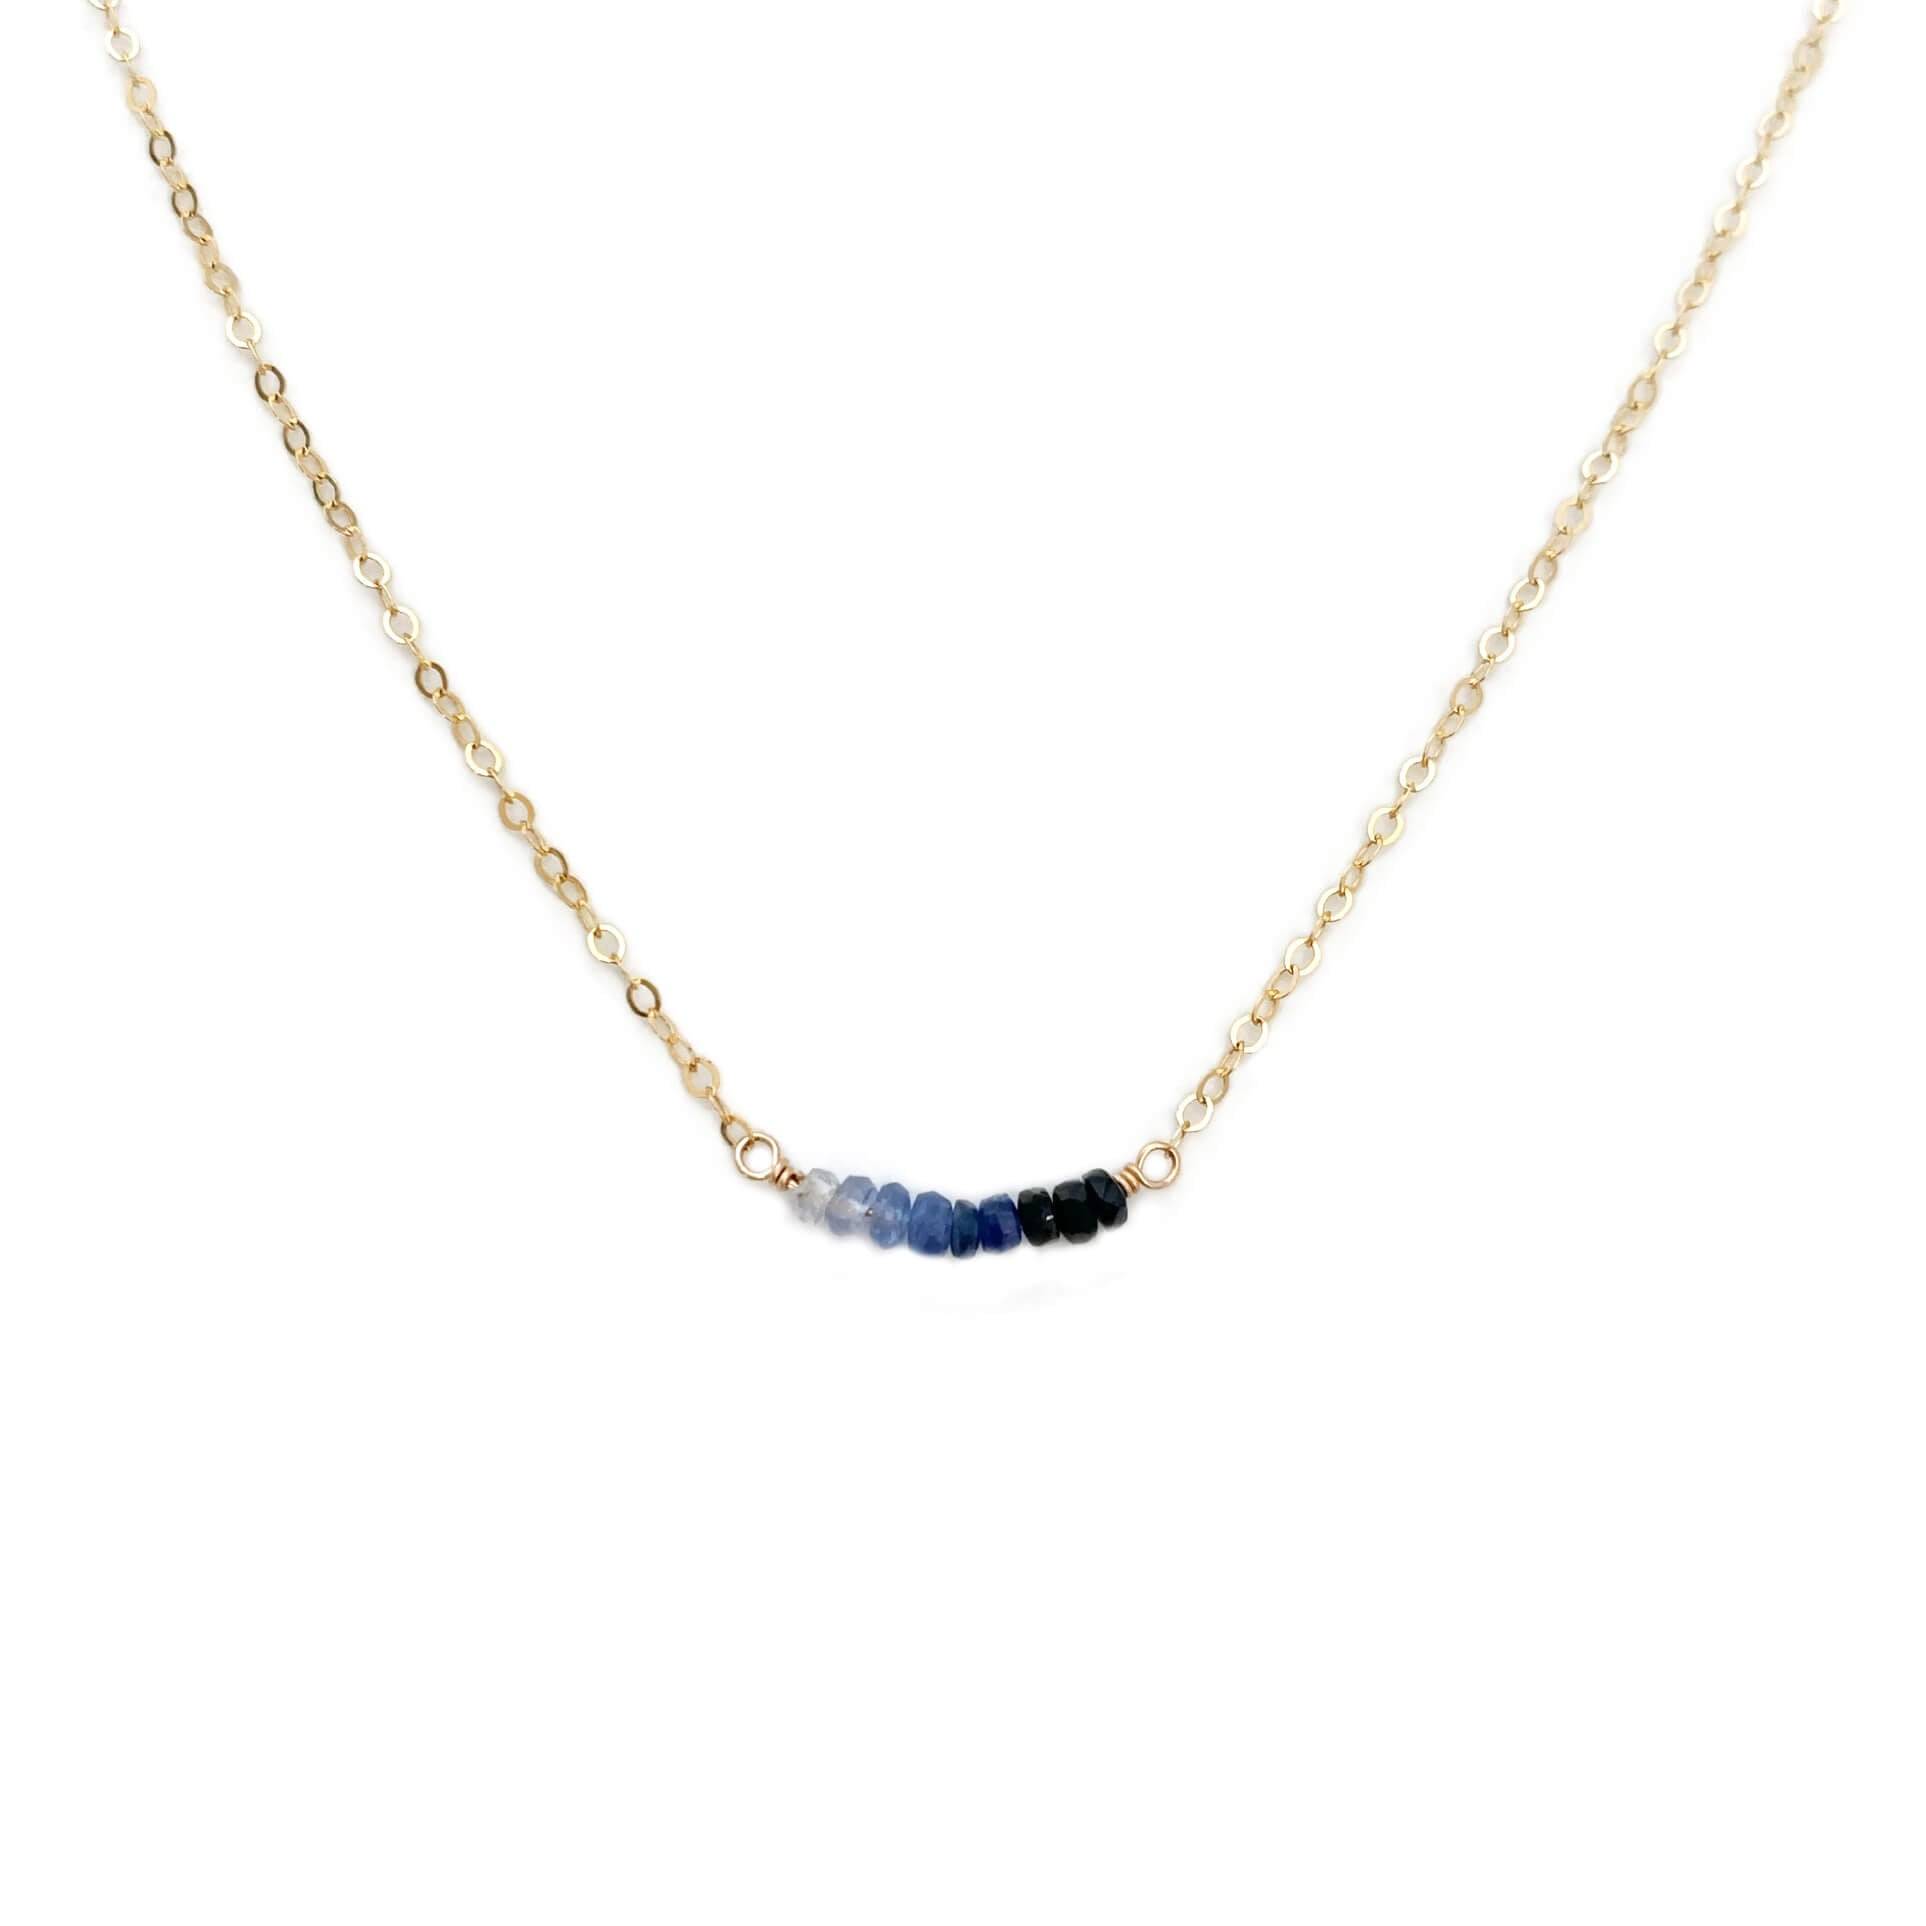 This dainty sapphire necklace is made of genuine sapphire beads and 14k gold chain.  We can make it in sterling silver or gold filled chain with extender.